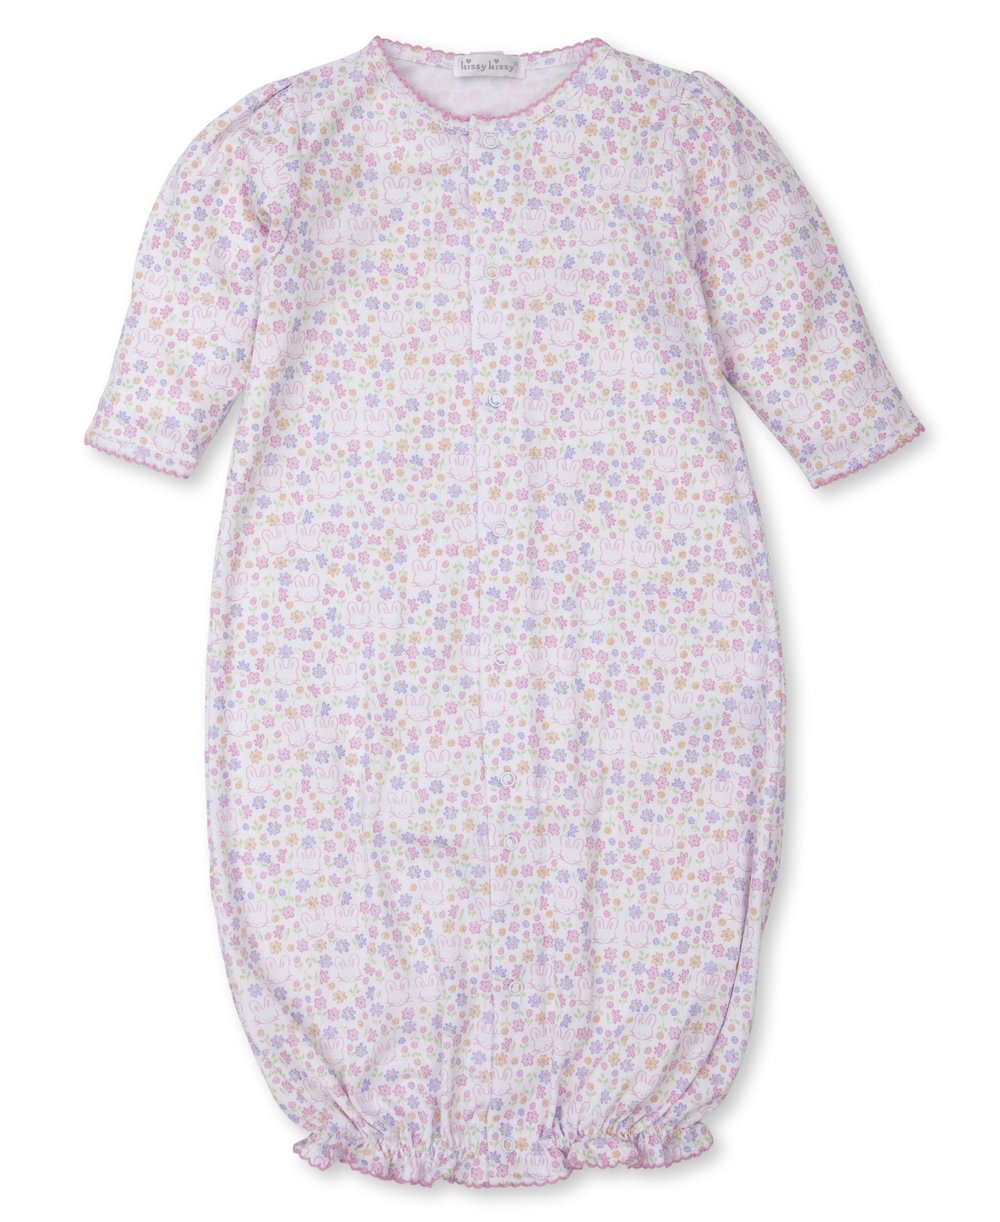 Kissy Kissy Backyard Bunnies Multi Gown